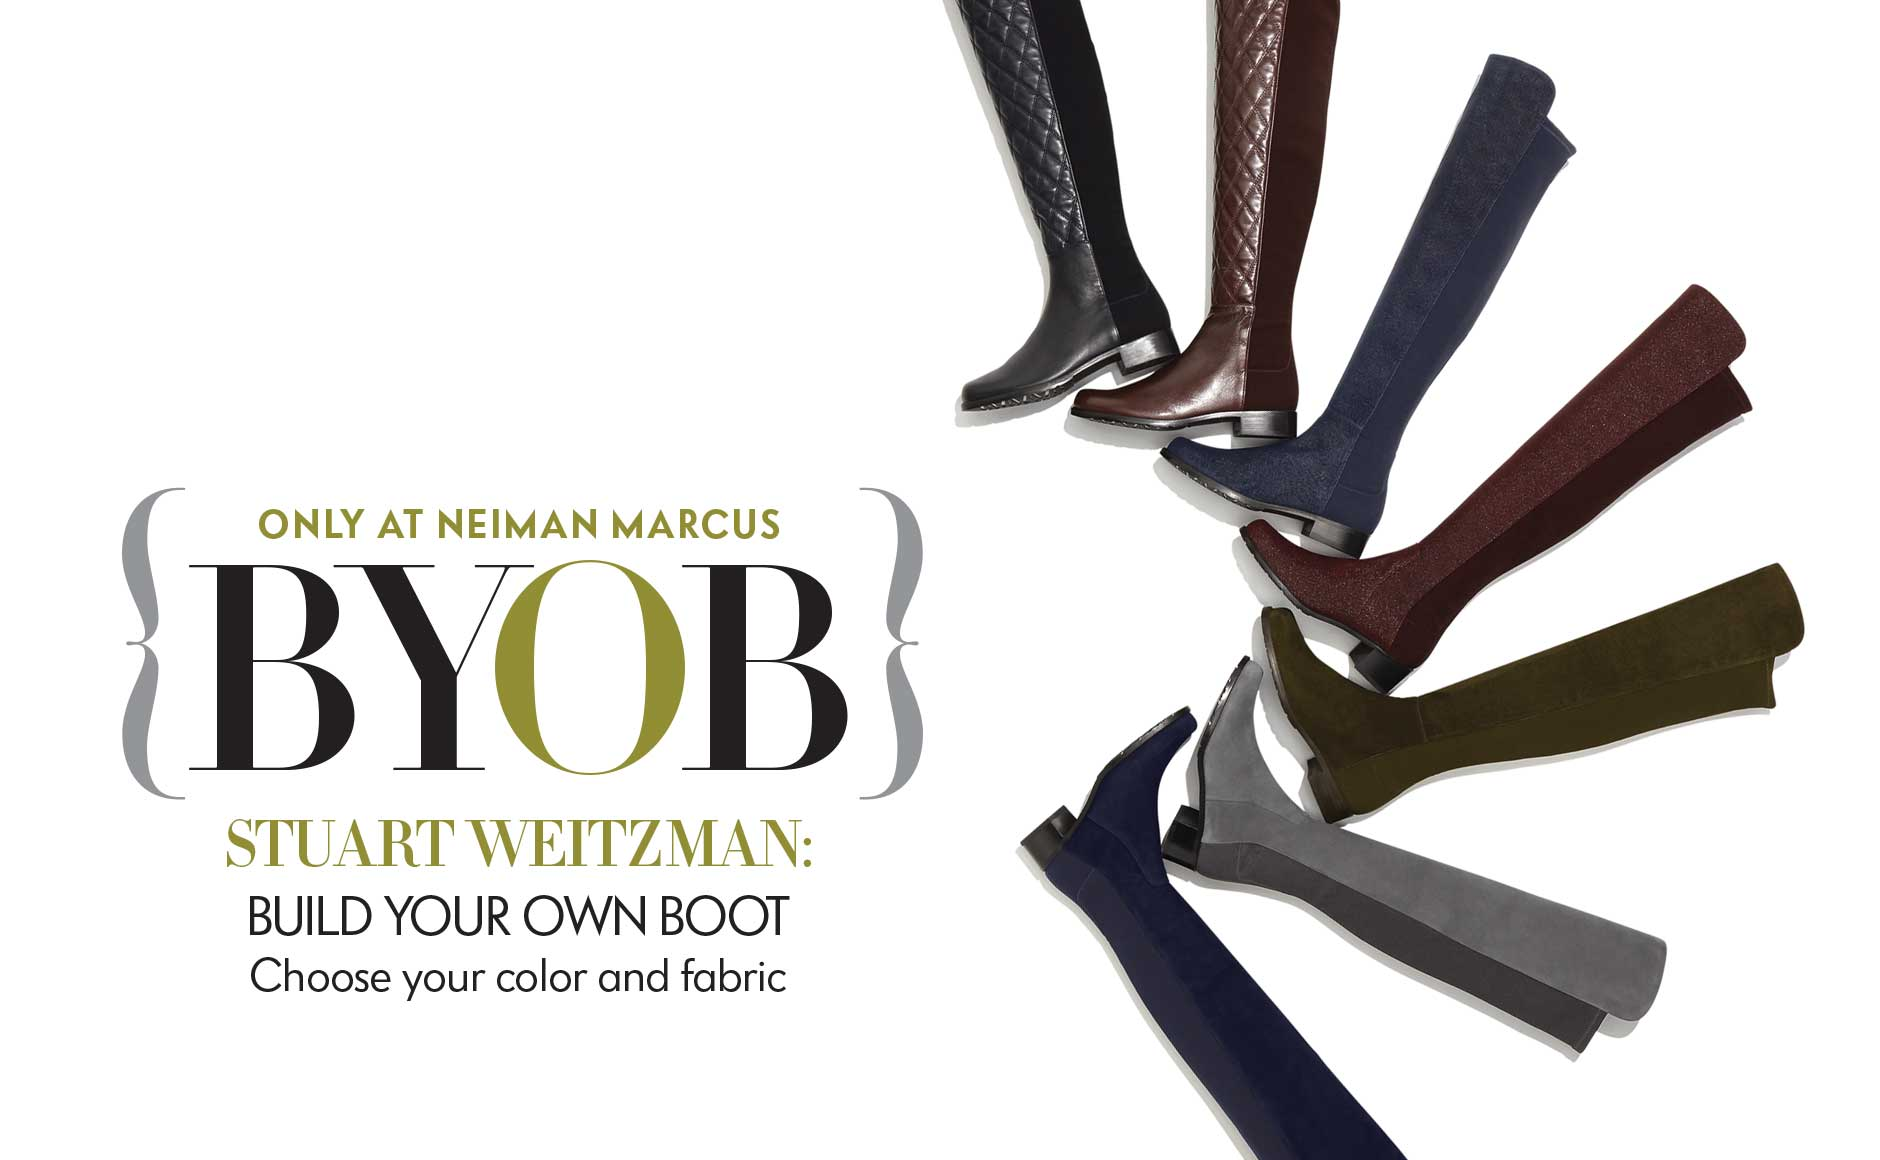 Stuart Weitzman: Build Your Own Boot